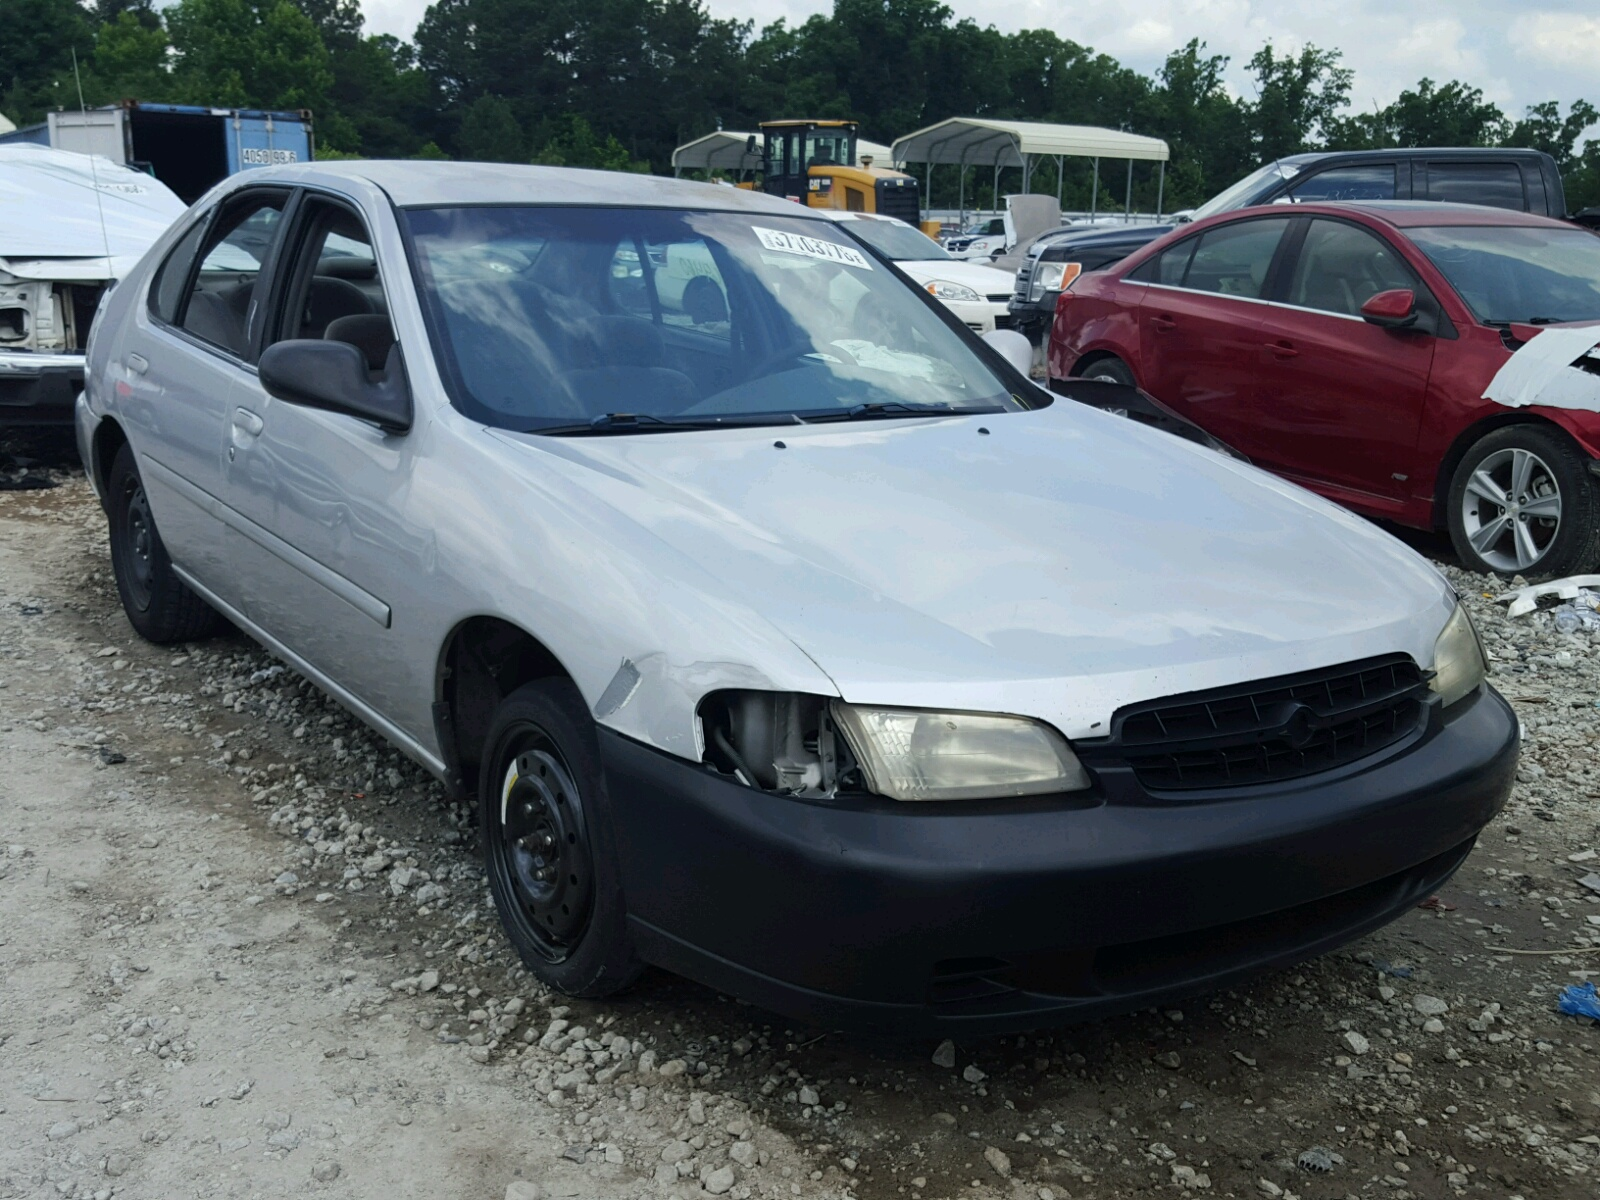 1n4dl01d8wc249623 1998 Silver Nissan Altima Xe On Sale In Ga Gxe 24l Left View